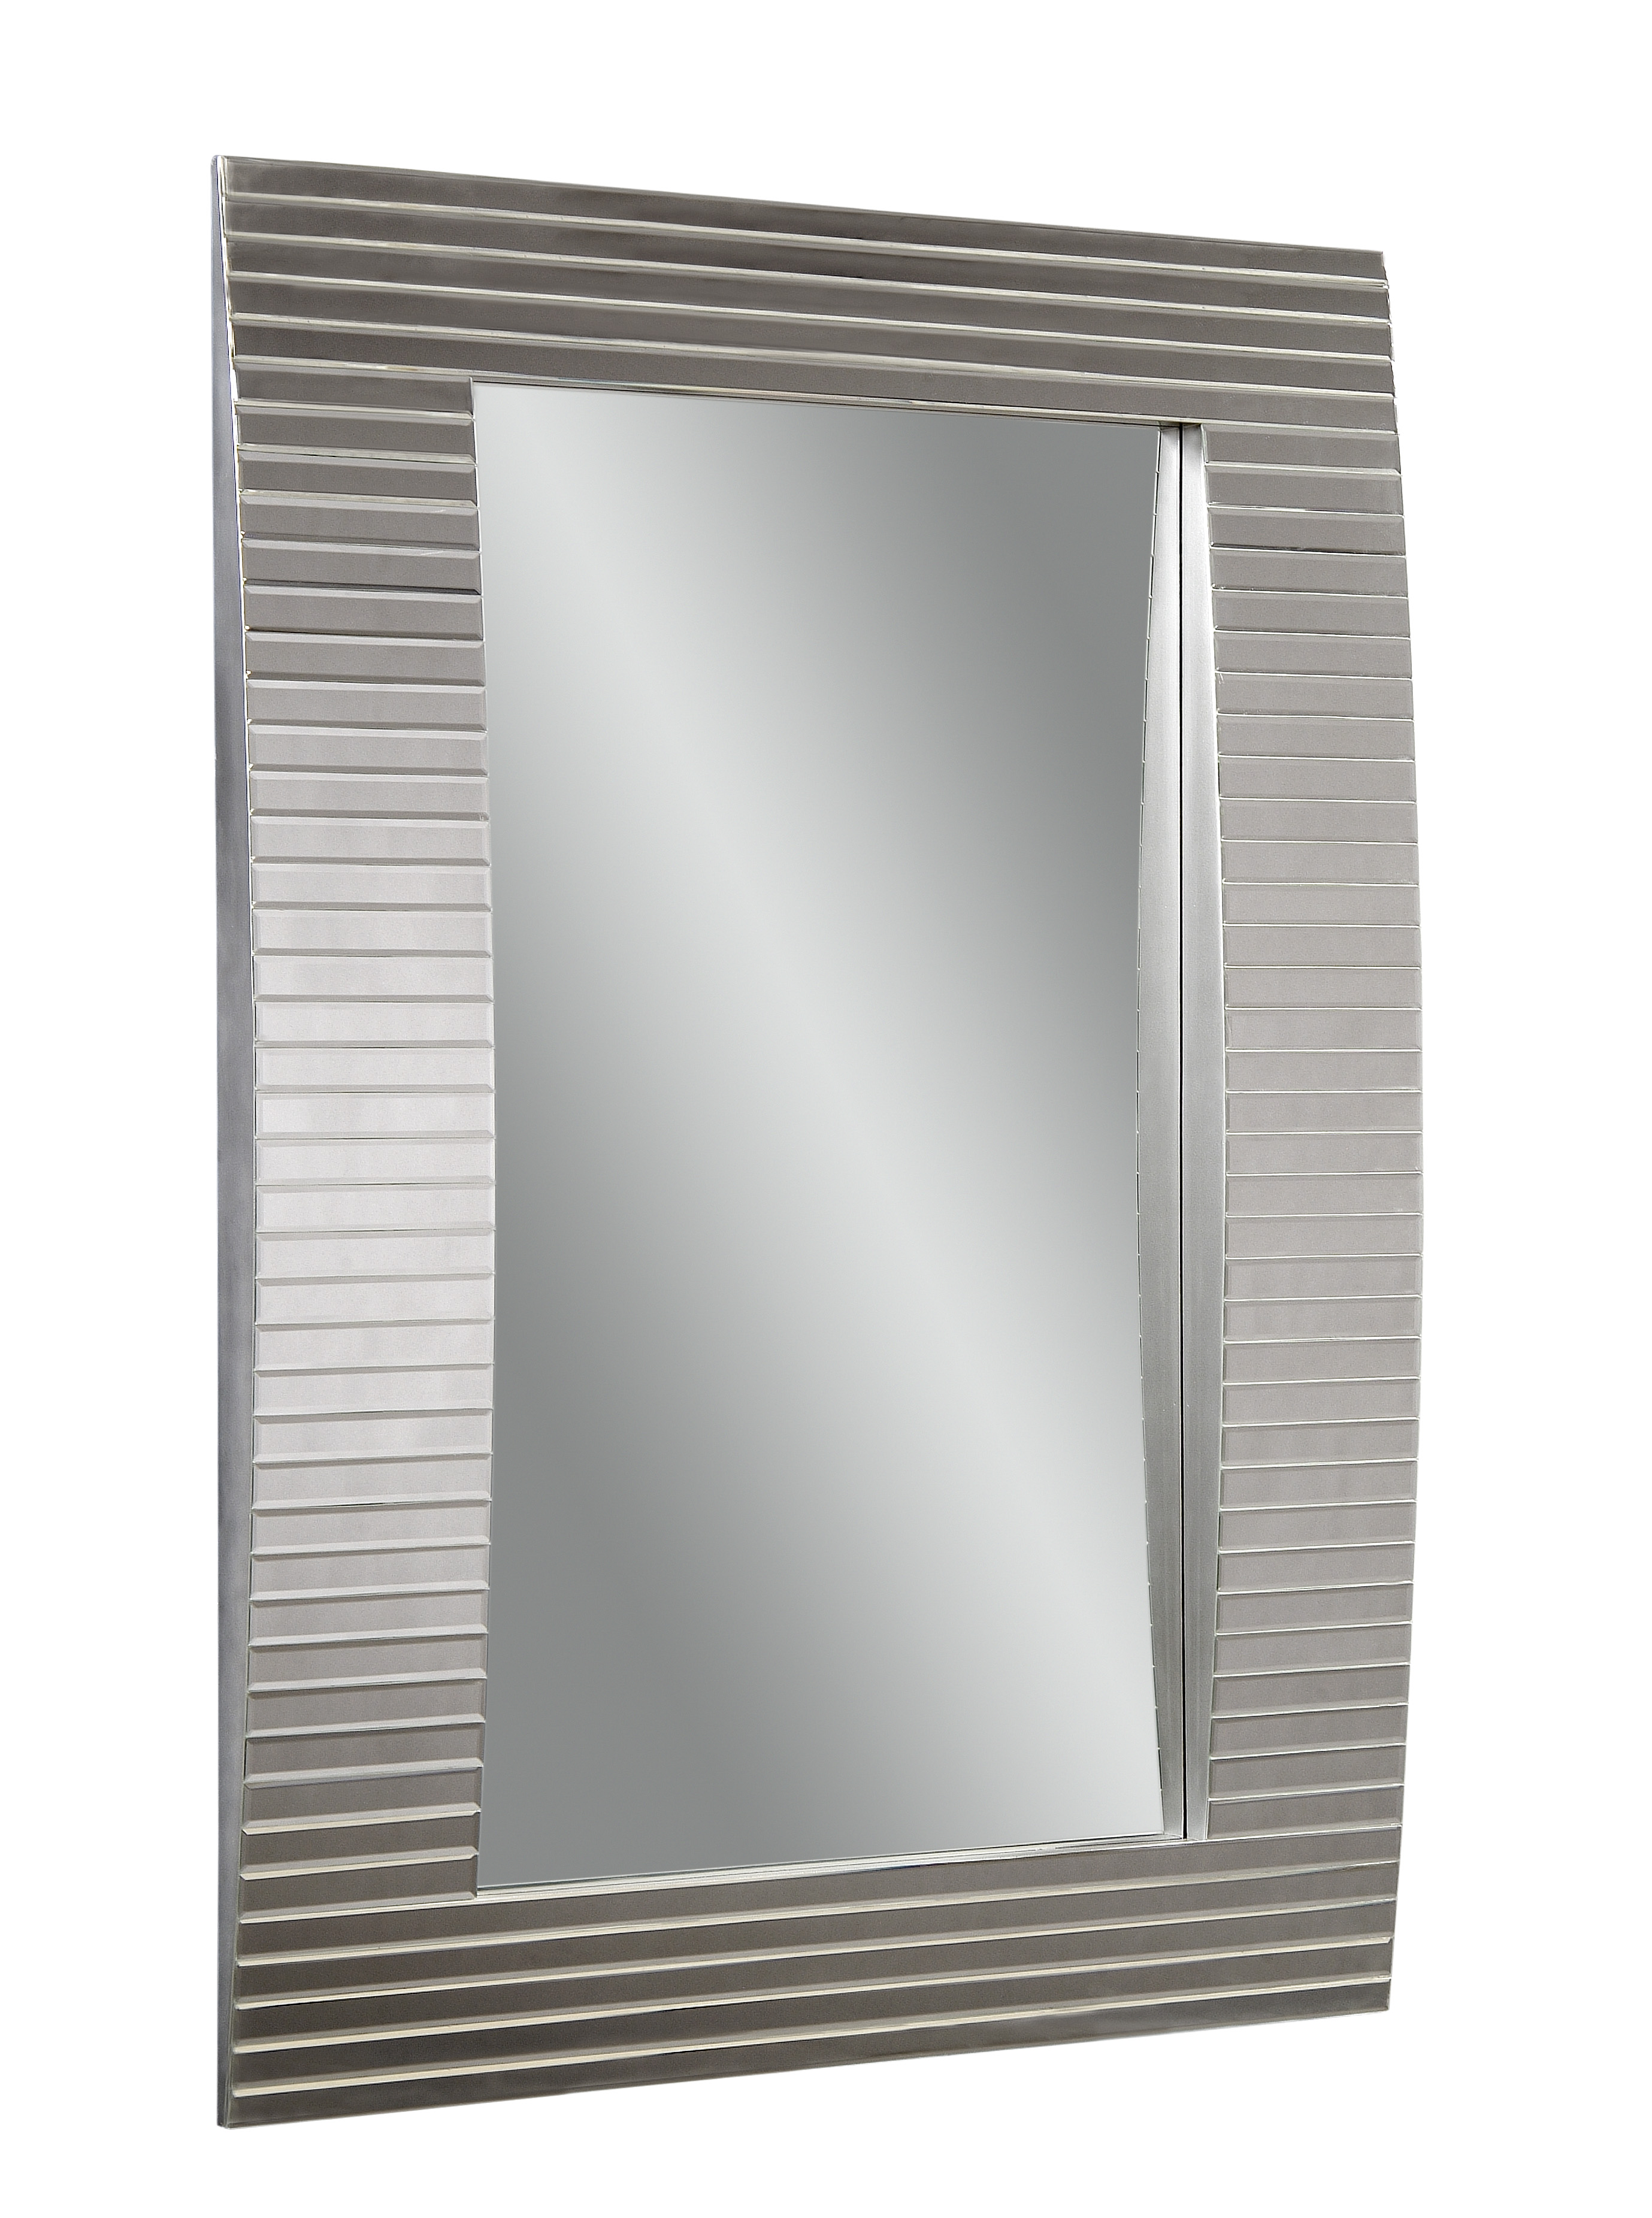 Thoroughly Modern Tambour Wall Mirror by Bassett Mirror at Alison Craig Home Furnishings